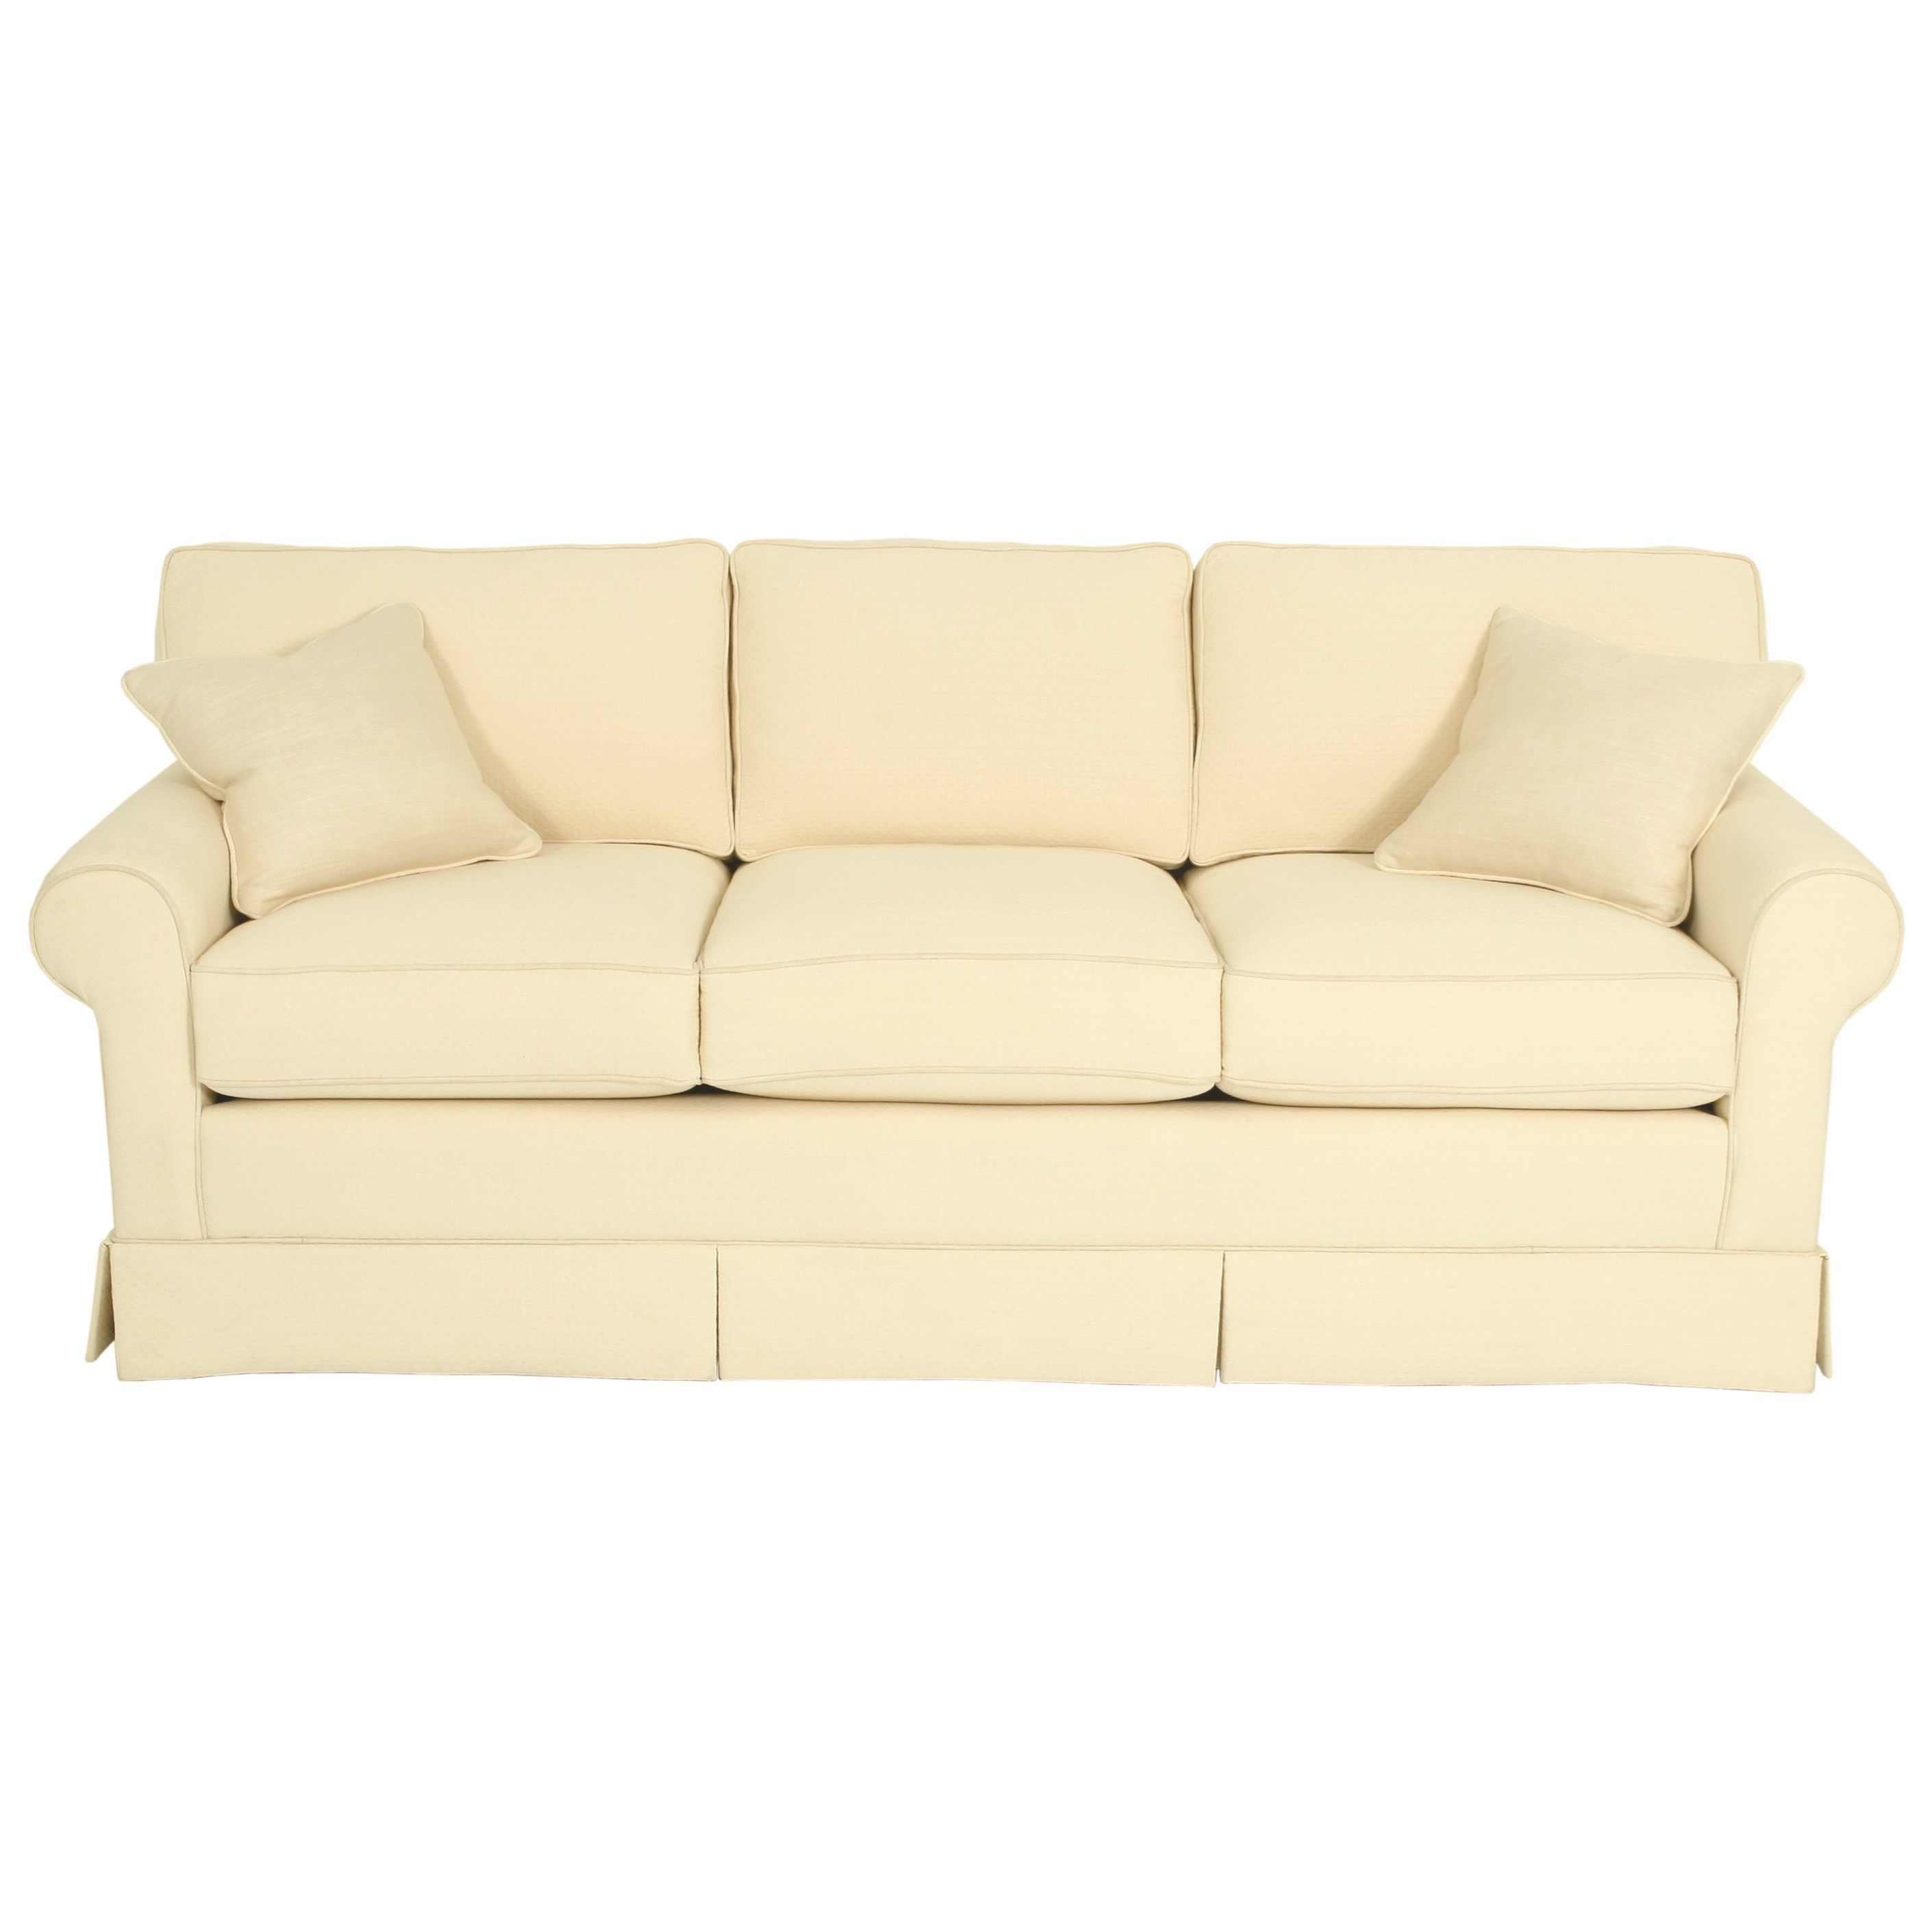 Copley Square Loose Back Stationary Sofa by Norwalk at Saugerties Furniture Mart